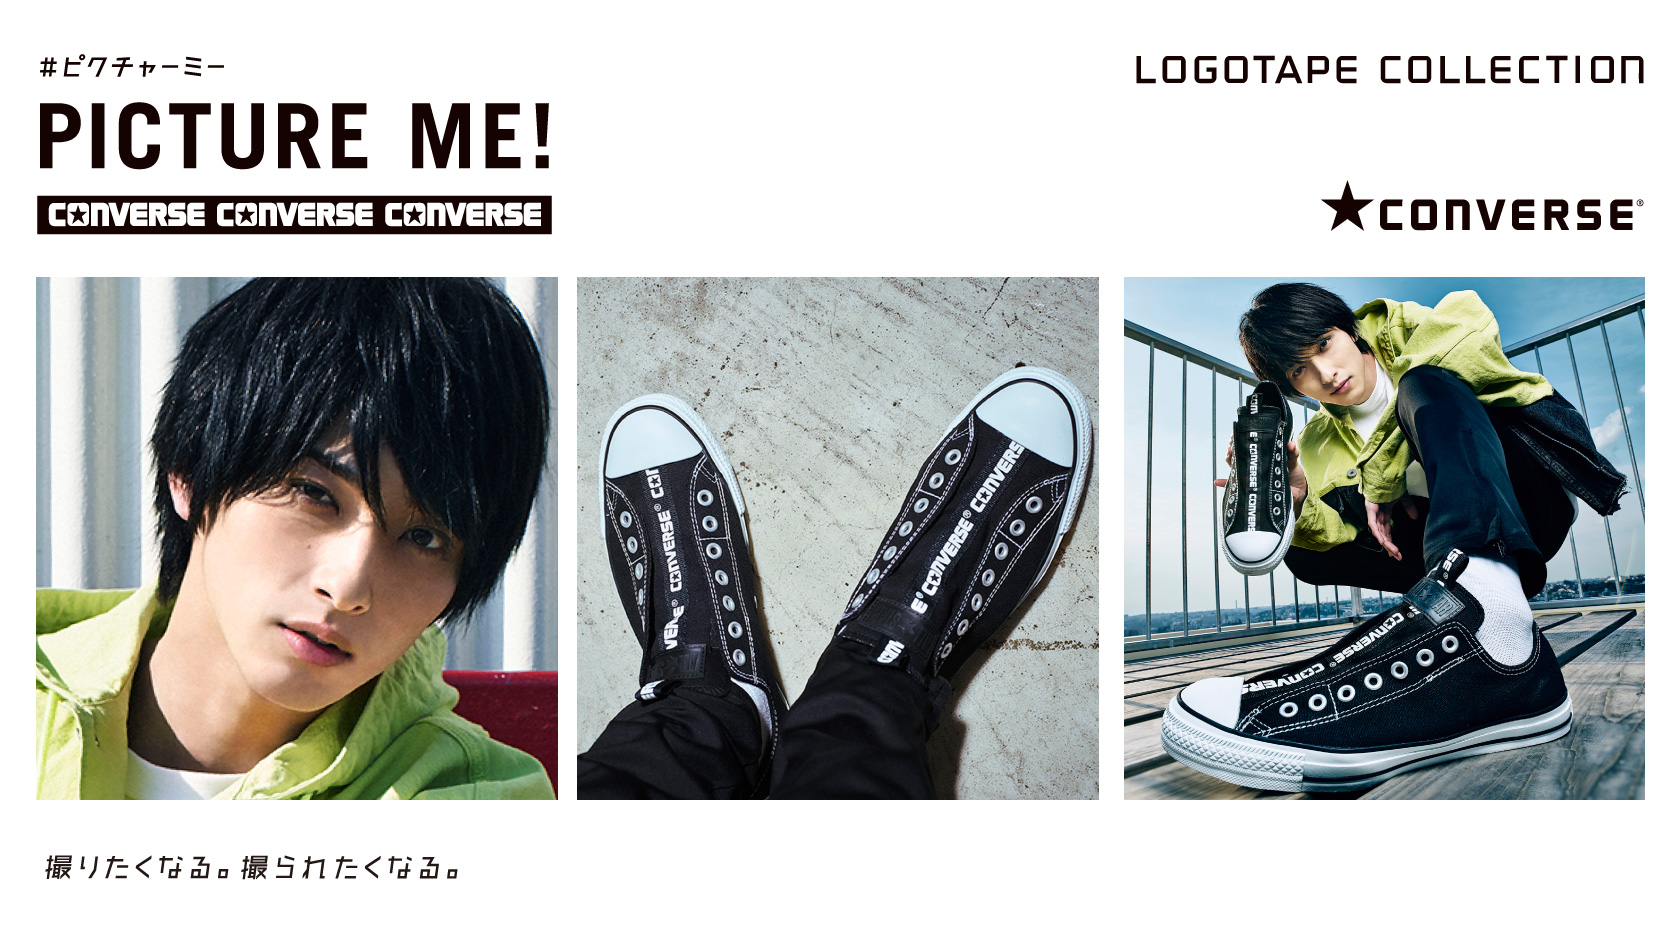 【TVCM】 横浜流星さん出演   CONVERSE ALL STAR LOGOTAPE COLLECTION